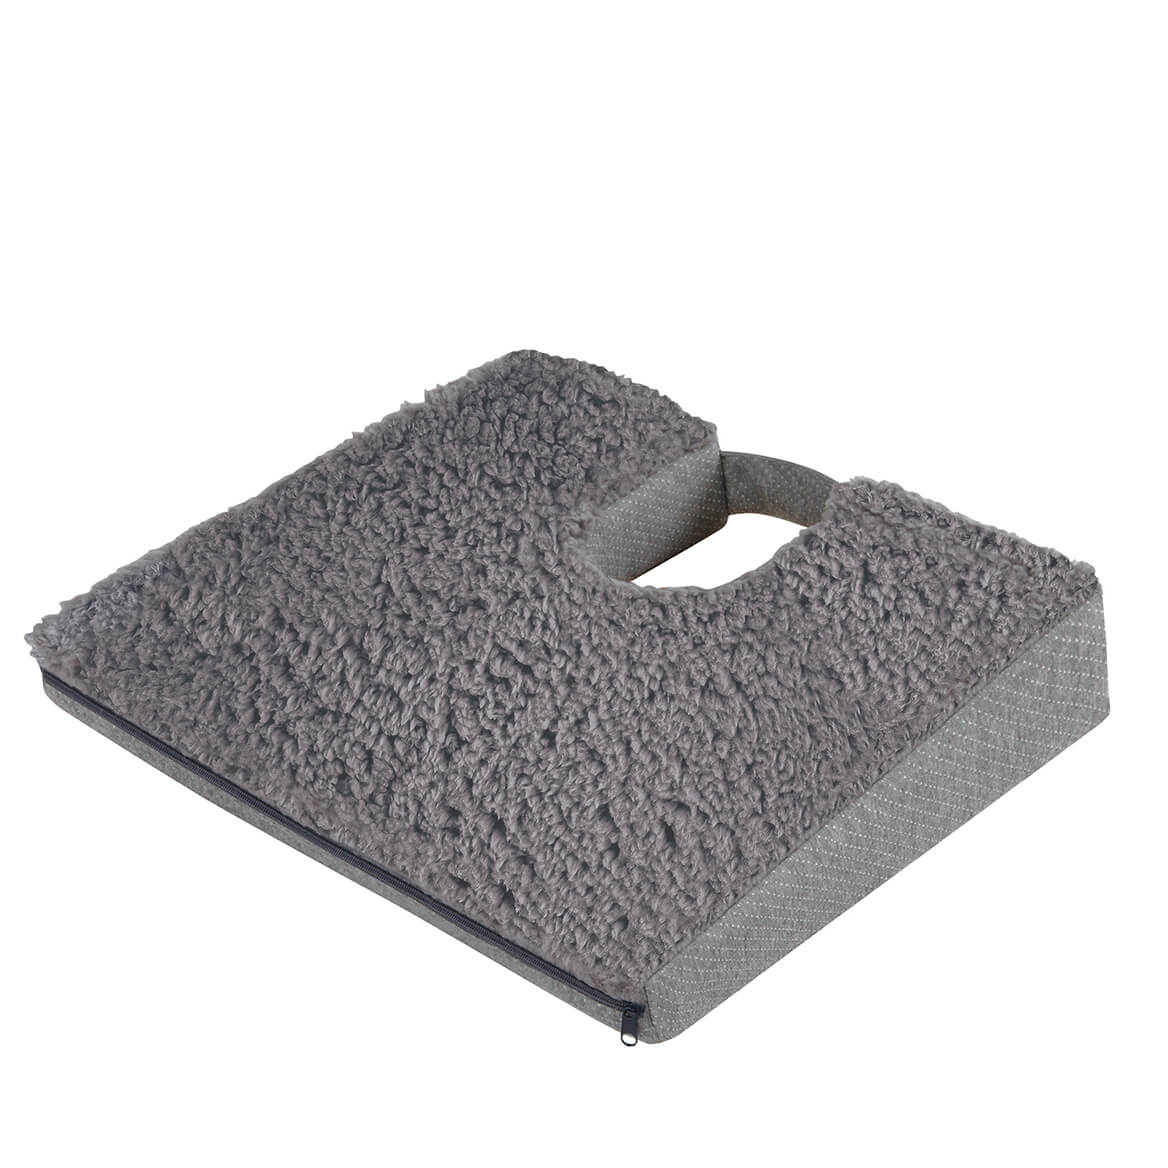 Bamboo Charcoal Spine Relief Pillow-369843